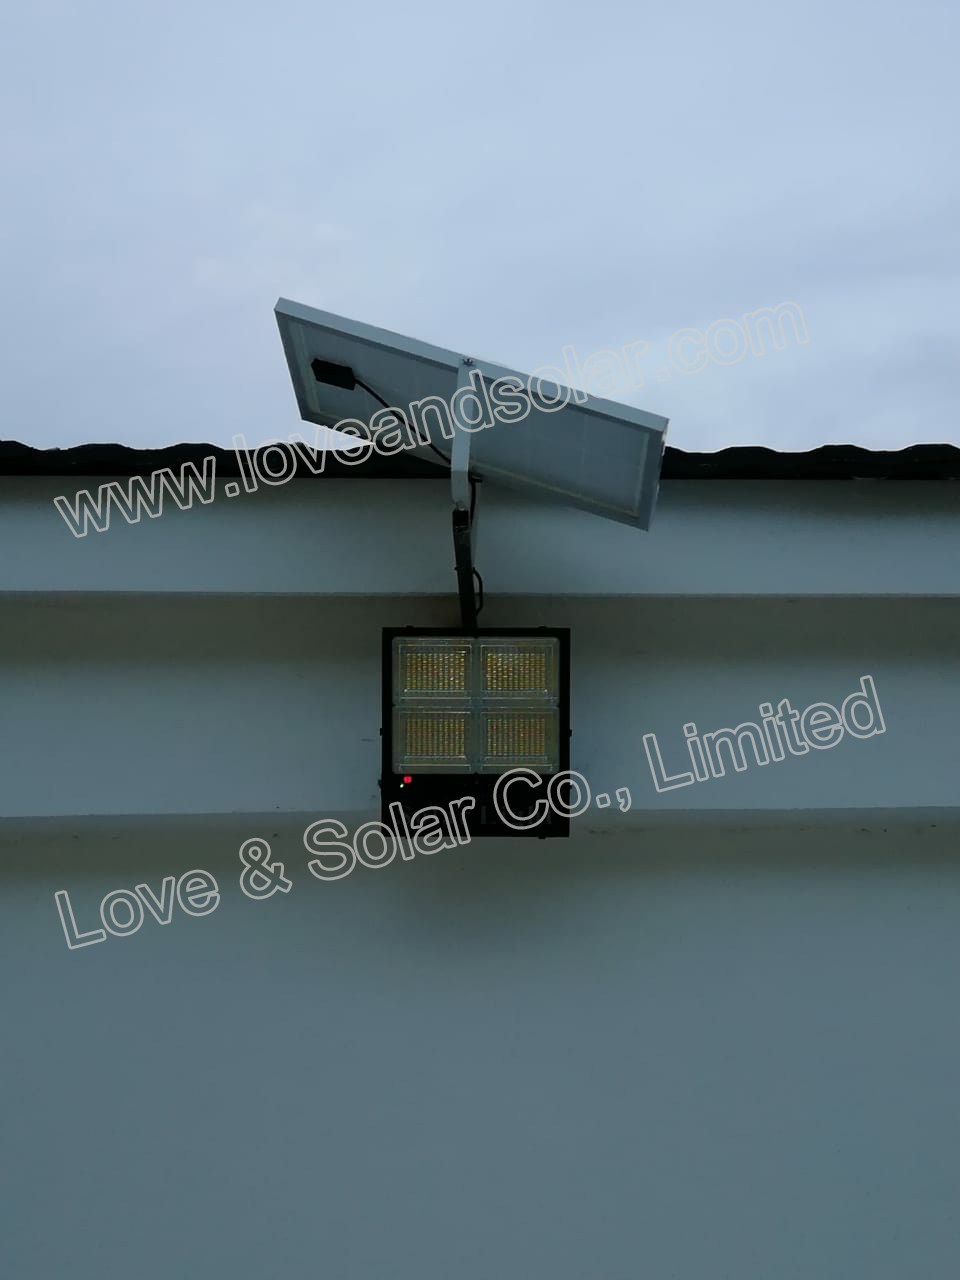 SD Solar Flood Light Project in Mozambique from LOVE & SOLAR CO., LIMITED